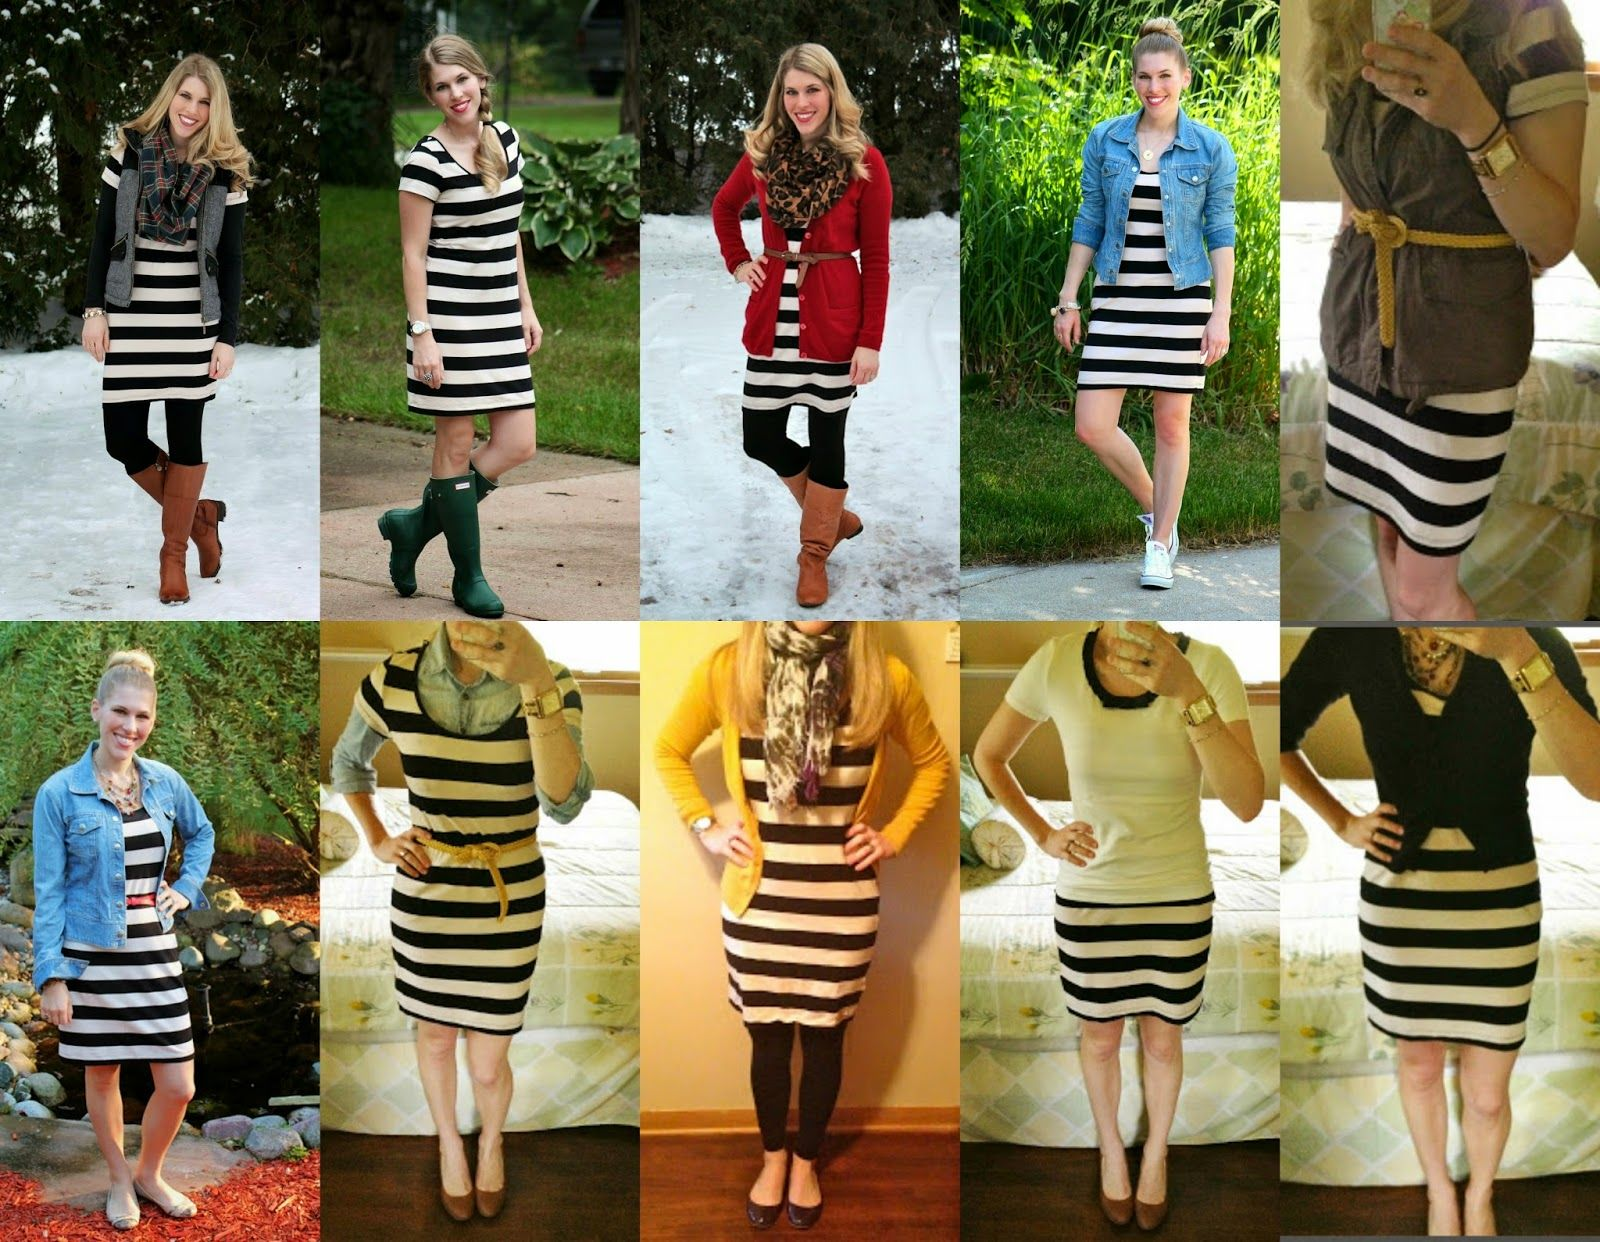 How To Wear Black And White Striped Dress